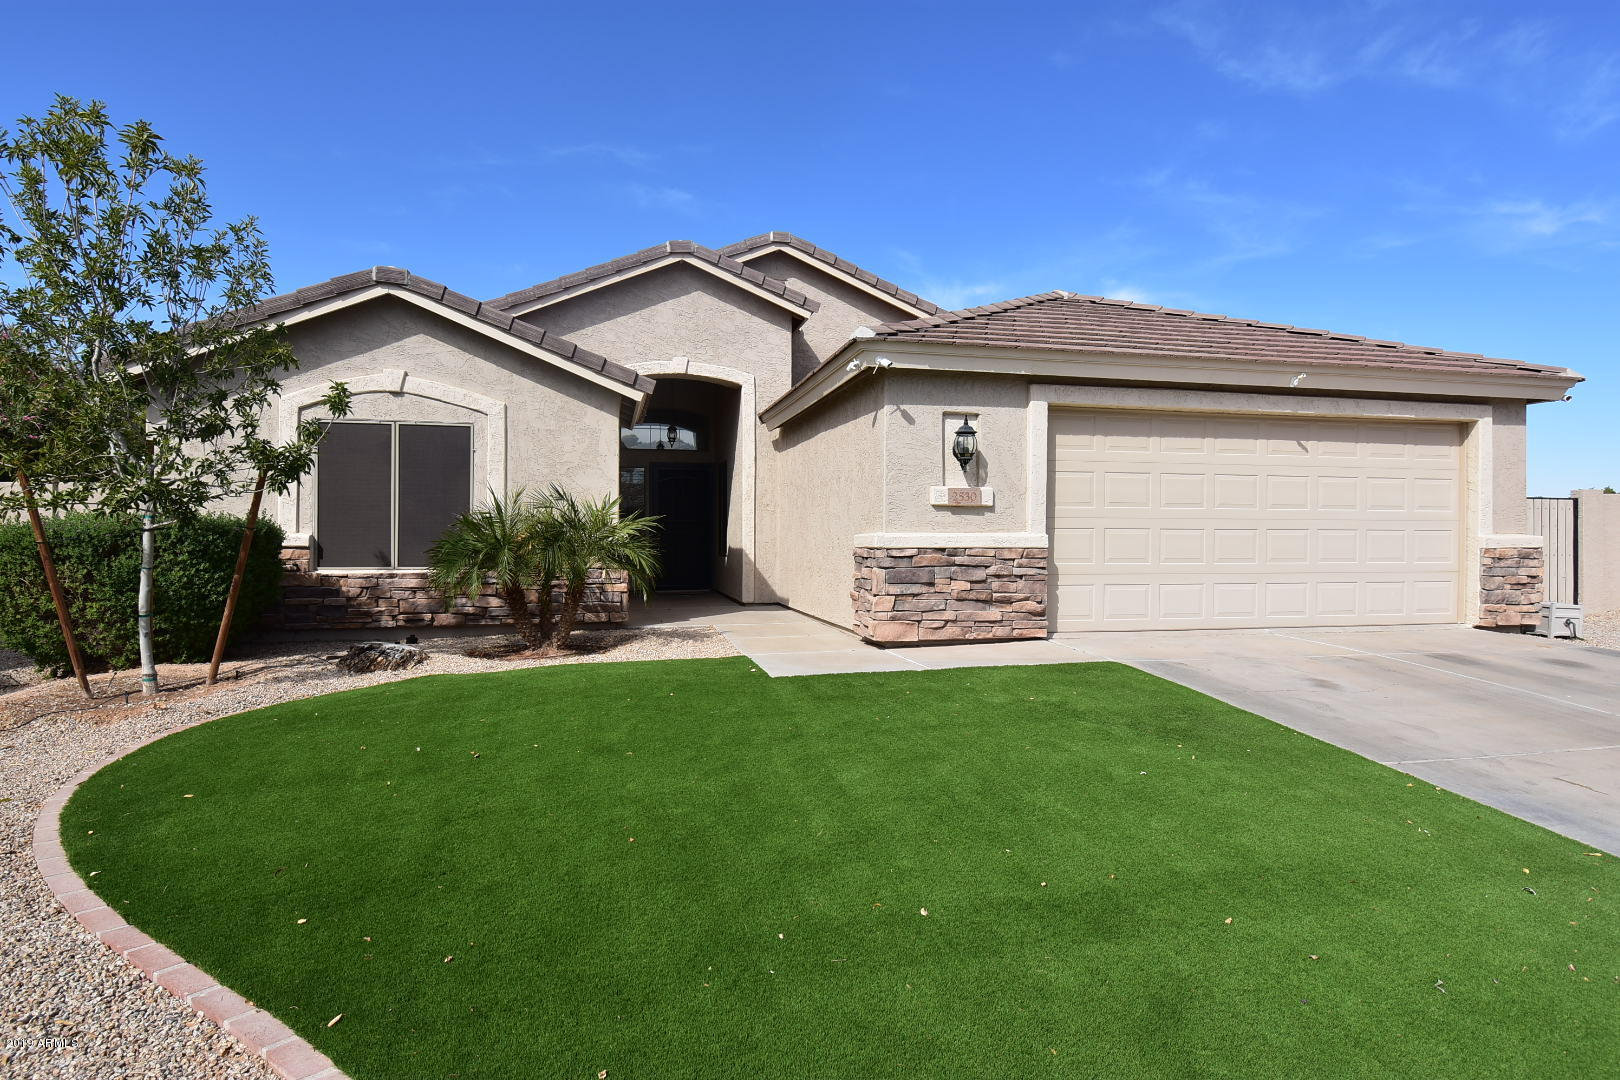 Photo of 2530 S SUNLAND Drive, Chandler, AZ 85286